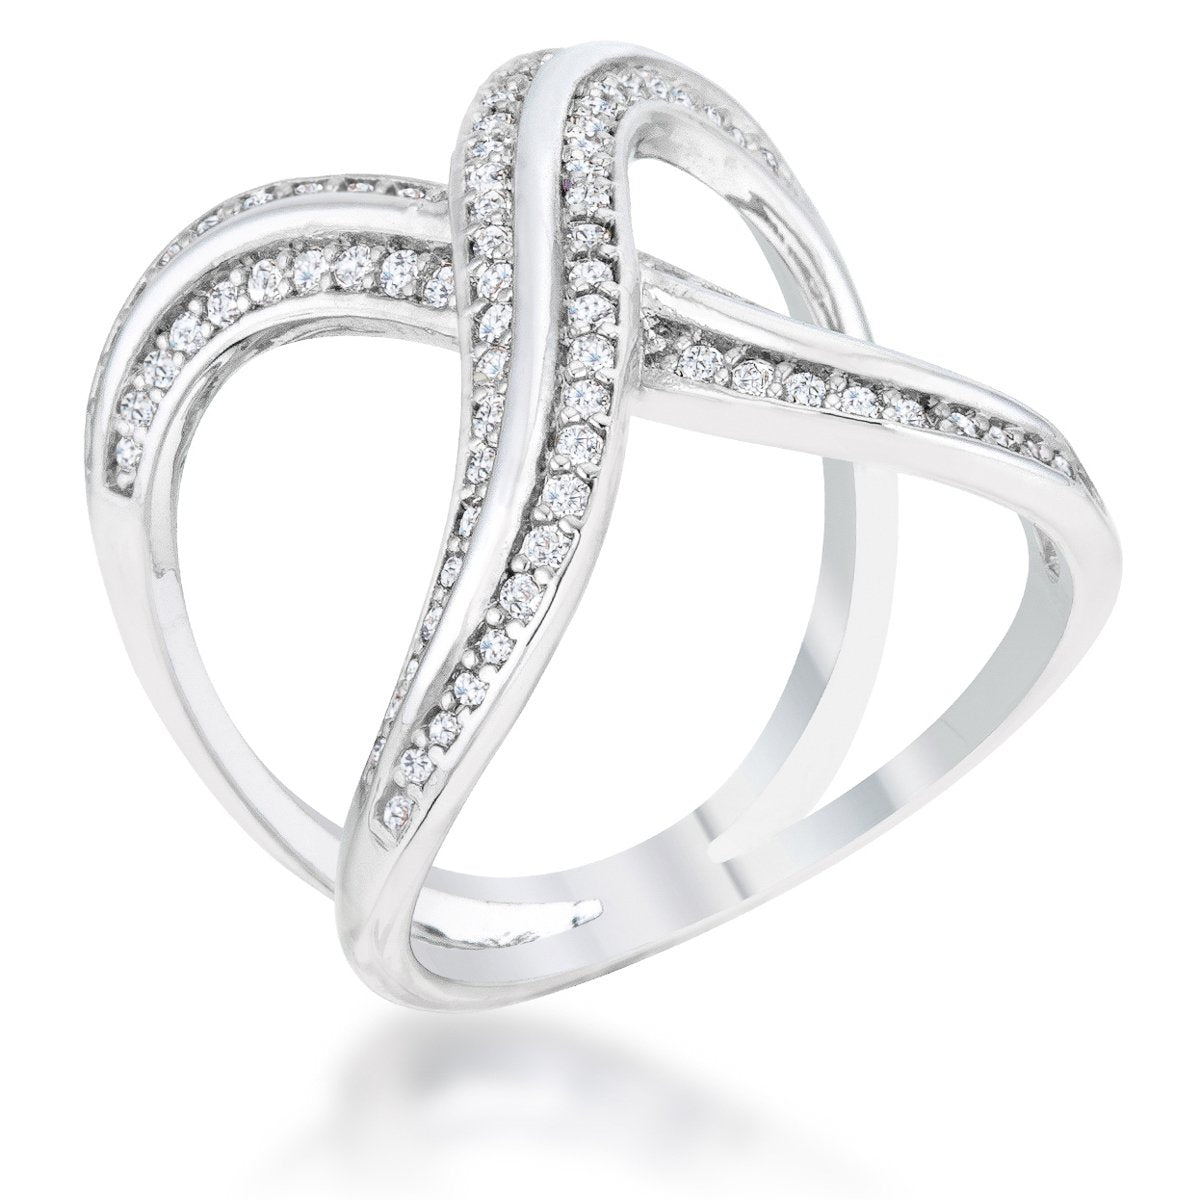 Christa 0.4ct CZ Rhodium Pave X Ring - R08480R-C01